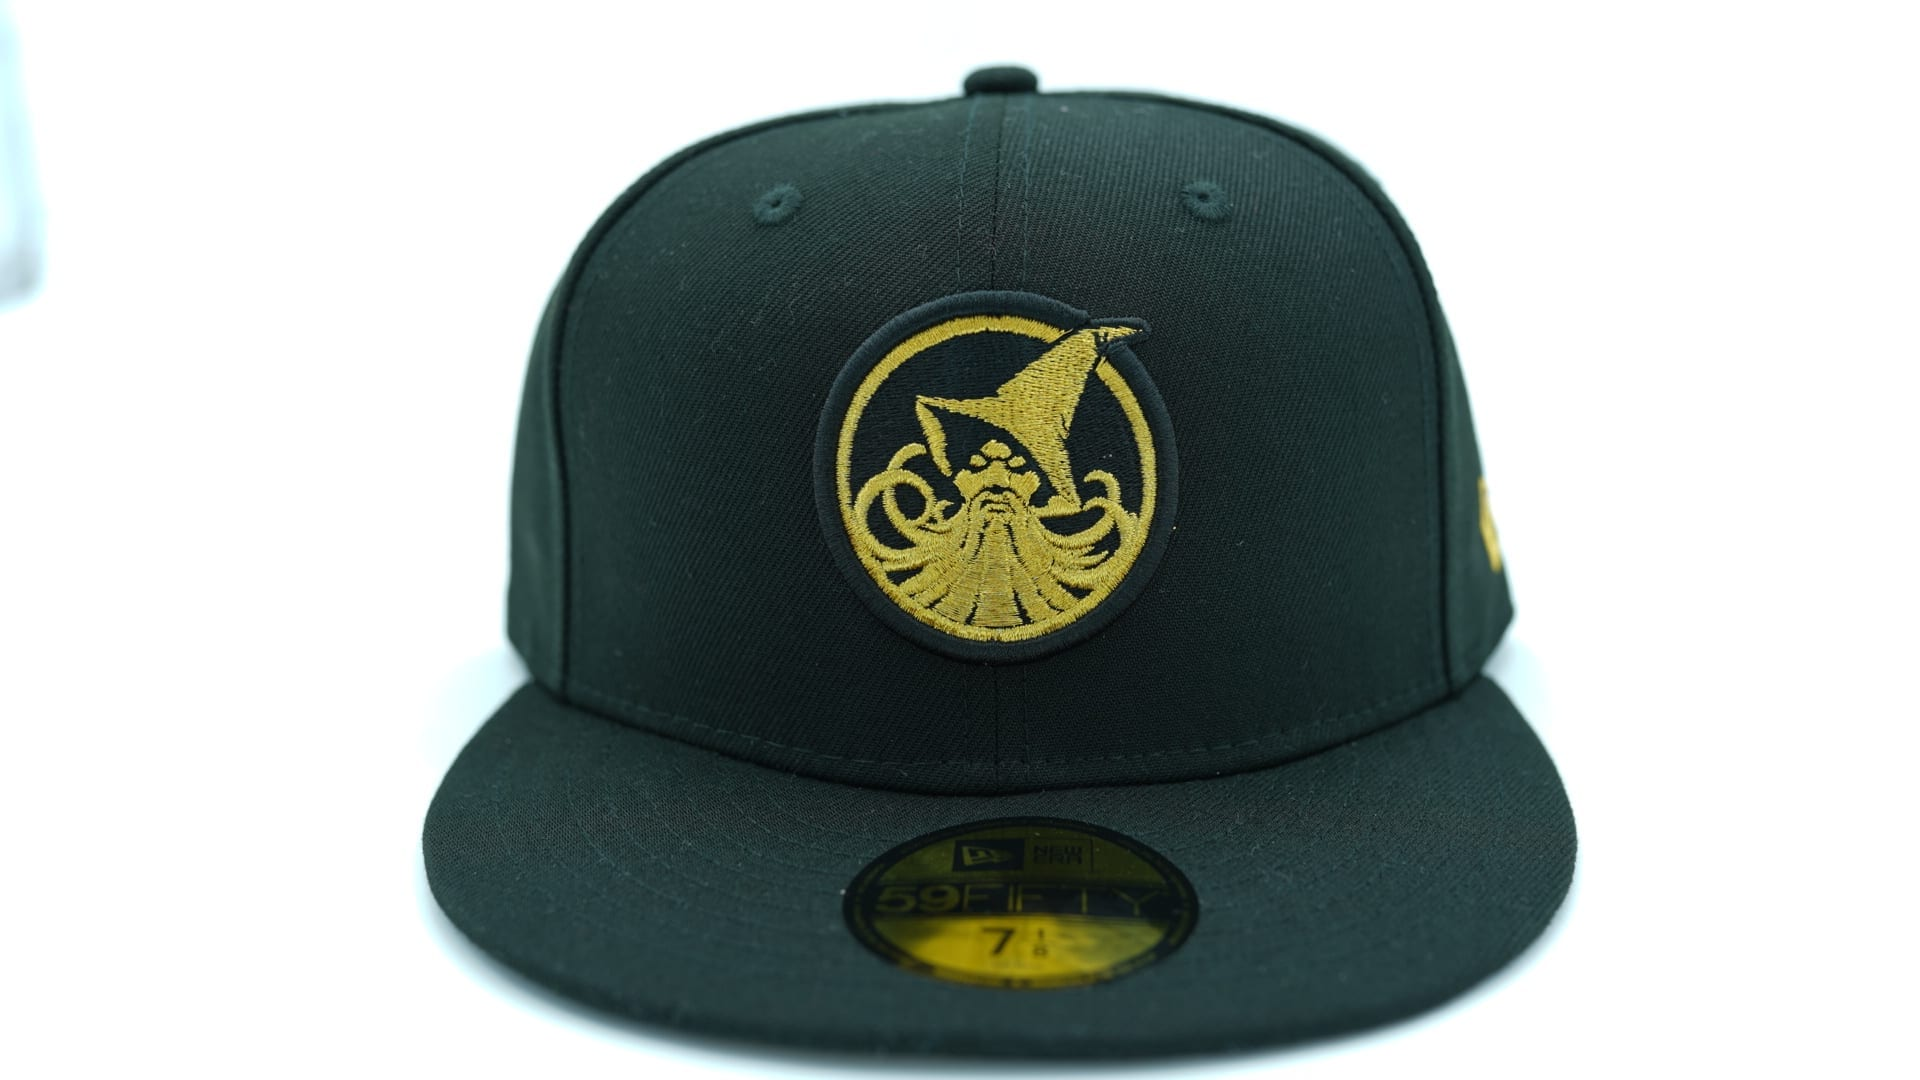 new fitteds hat club custom new era 59fifty fitted caps